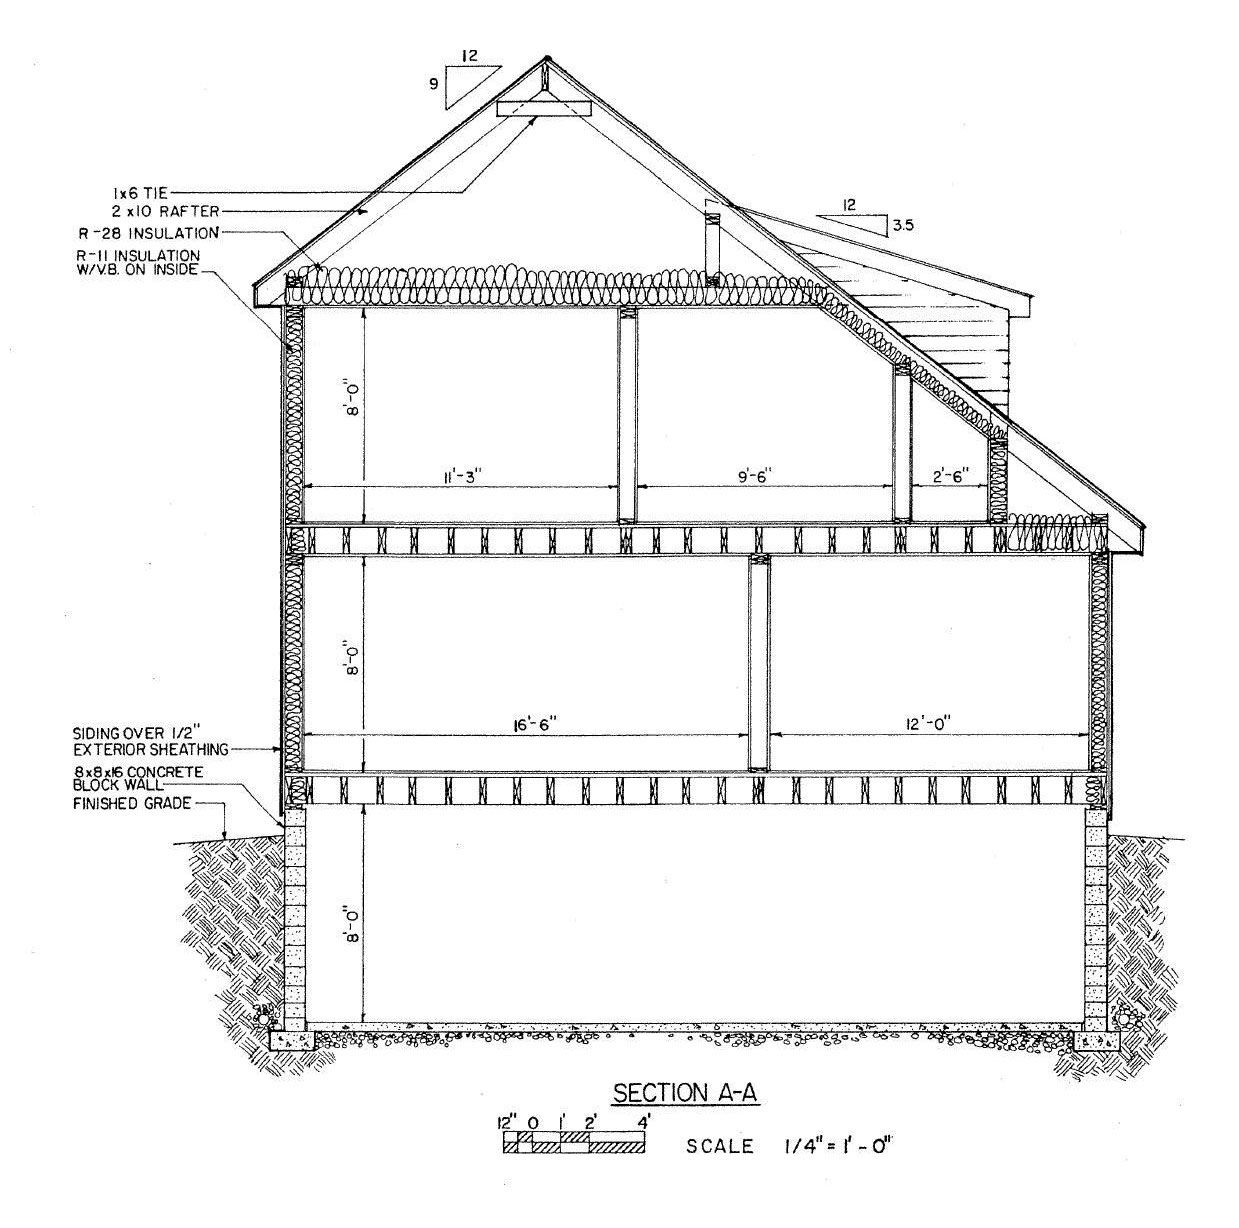 Basement Foundation Design saltbox | saltbox home cross section saltbox house basement